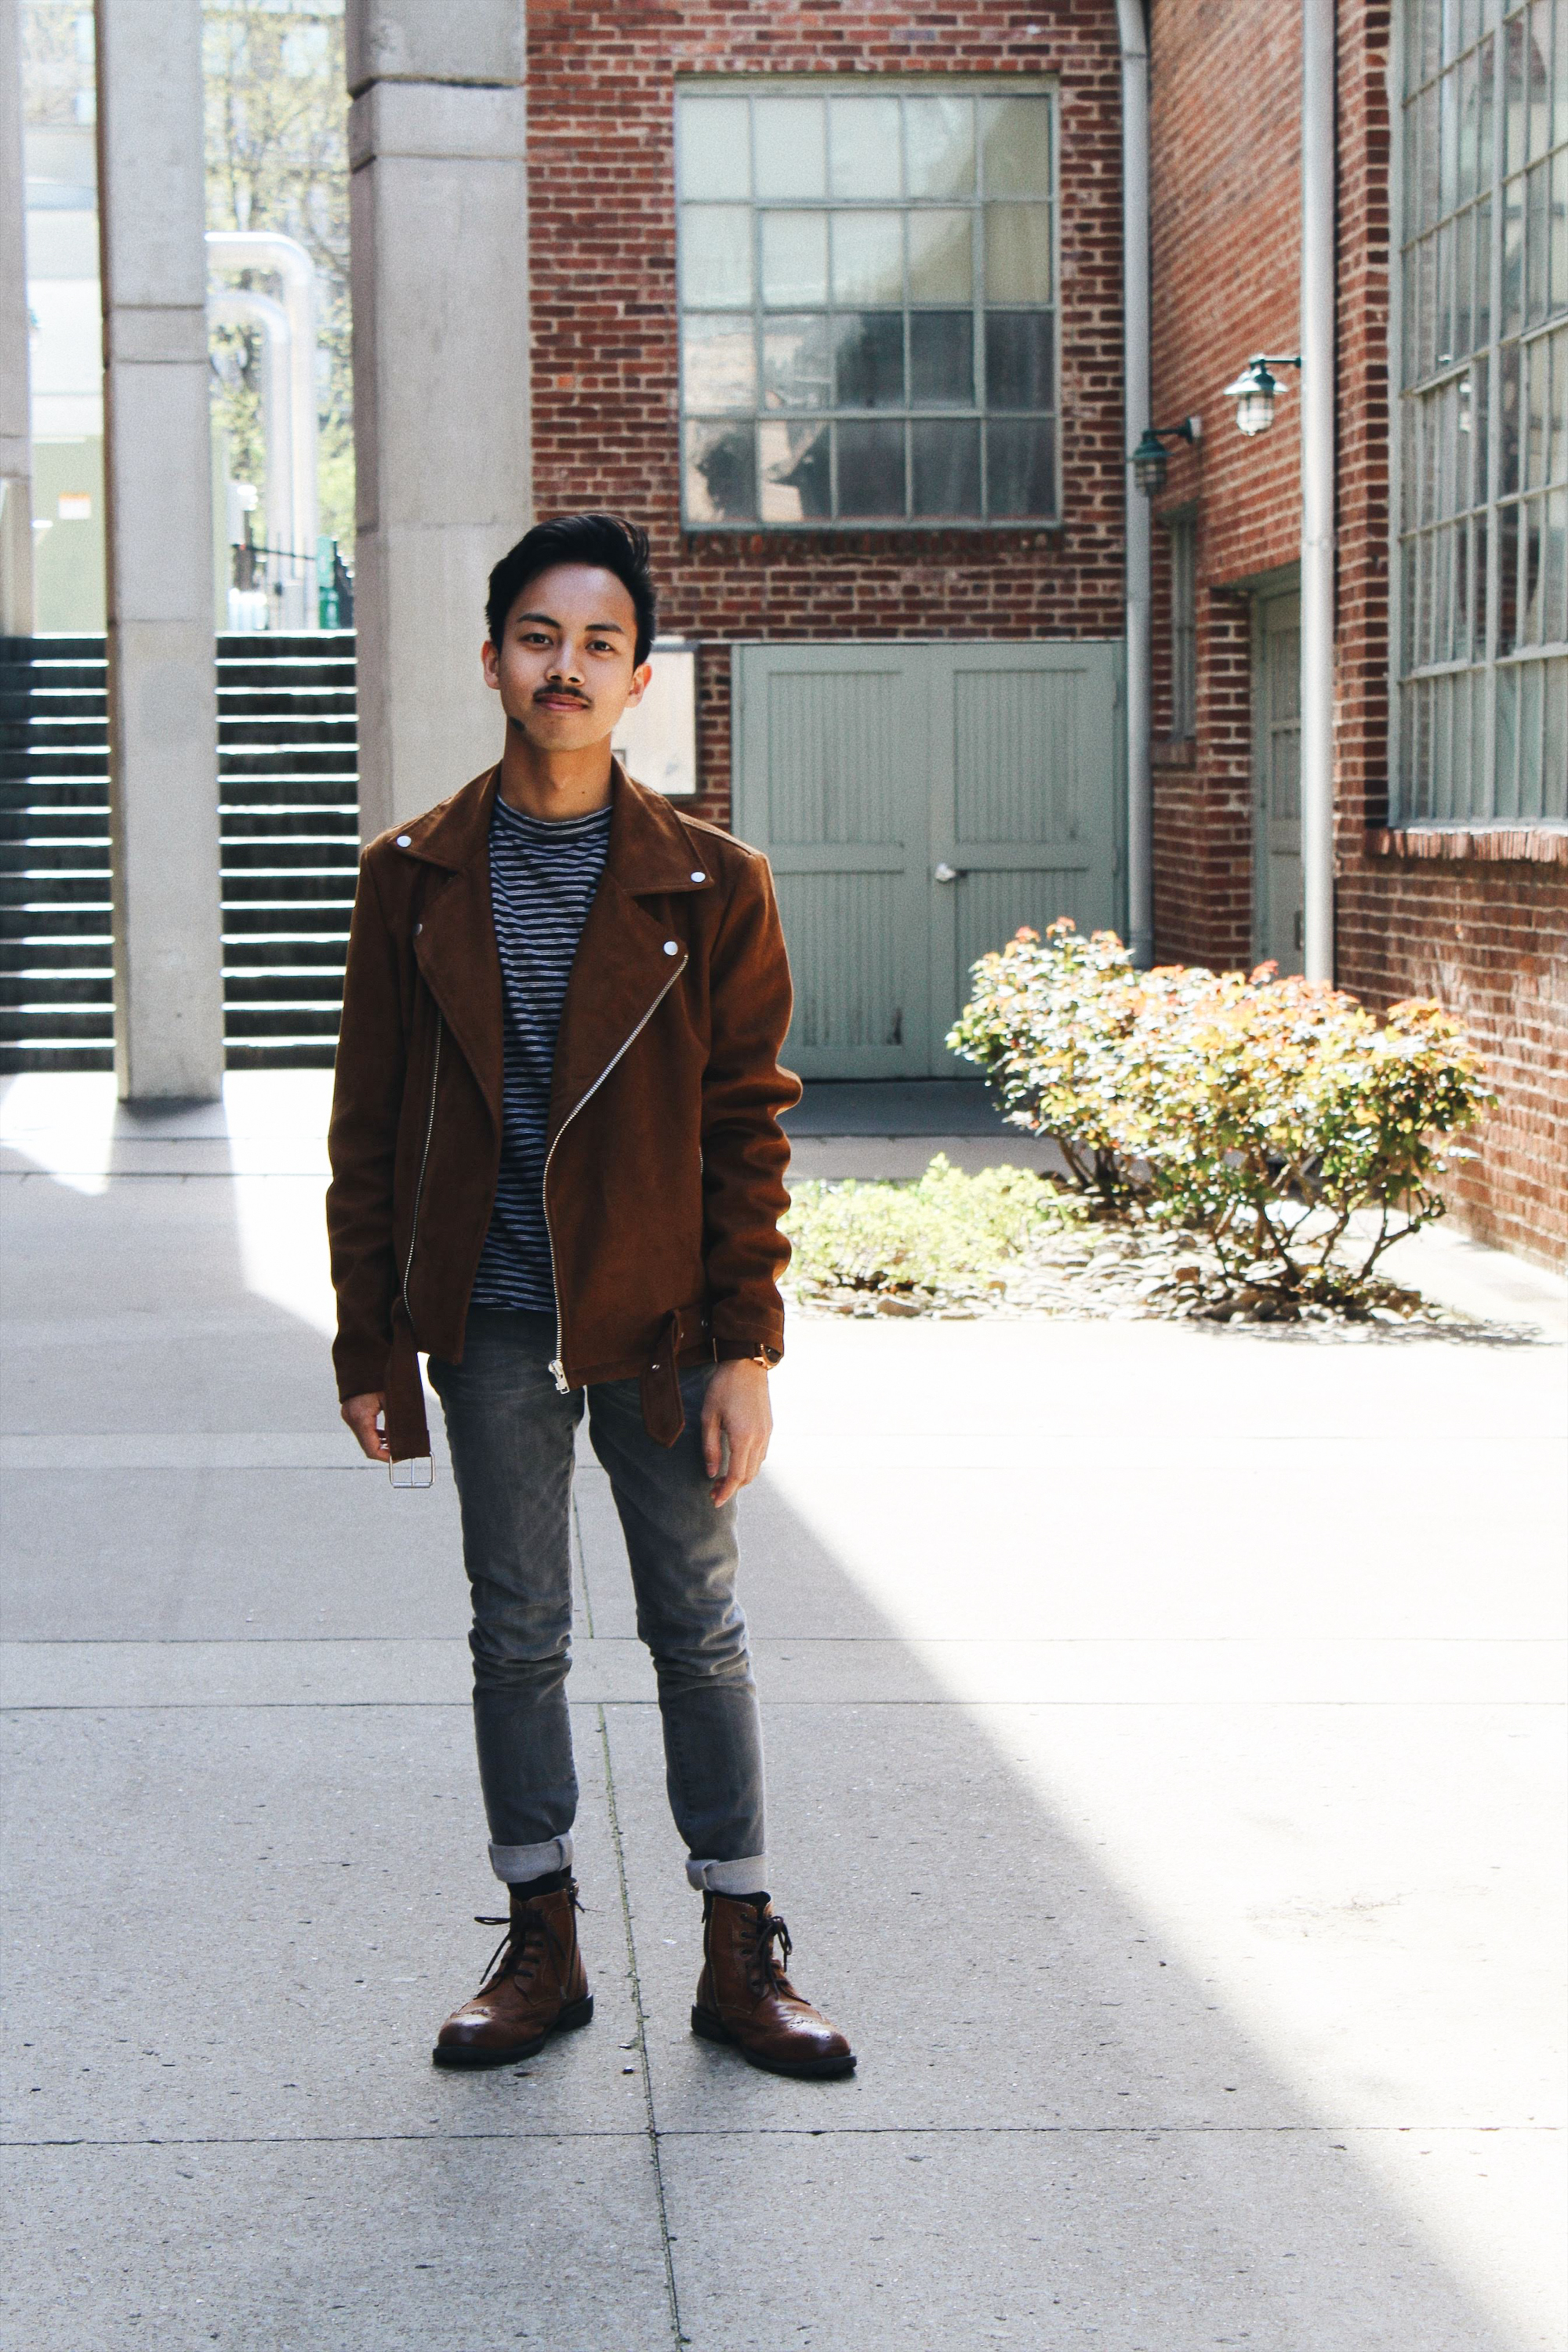 Sometimes developing a style involves stealing or copying. My boyfriend Mathew has an expensive, genuine suede moto jacket like this one. Mine is from Forever 21 and made of polyester. I try to avoid fast fashion as much as I can, so this is the only Forever 21 garment I own.